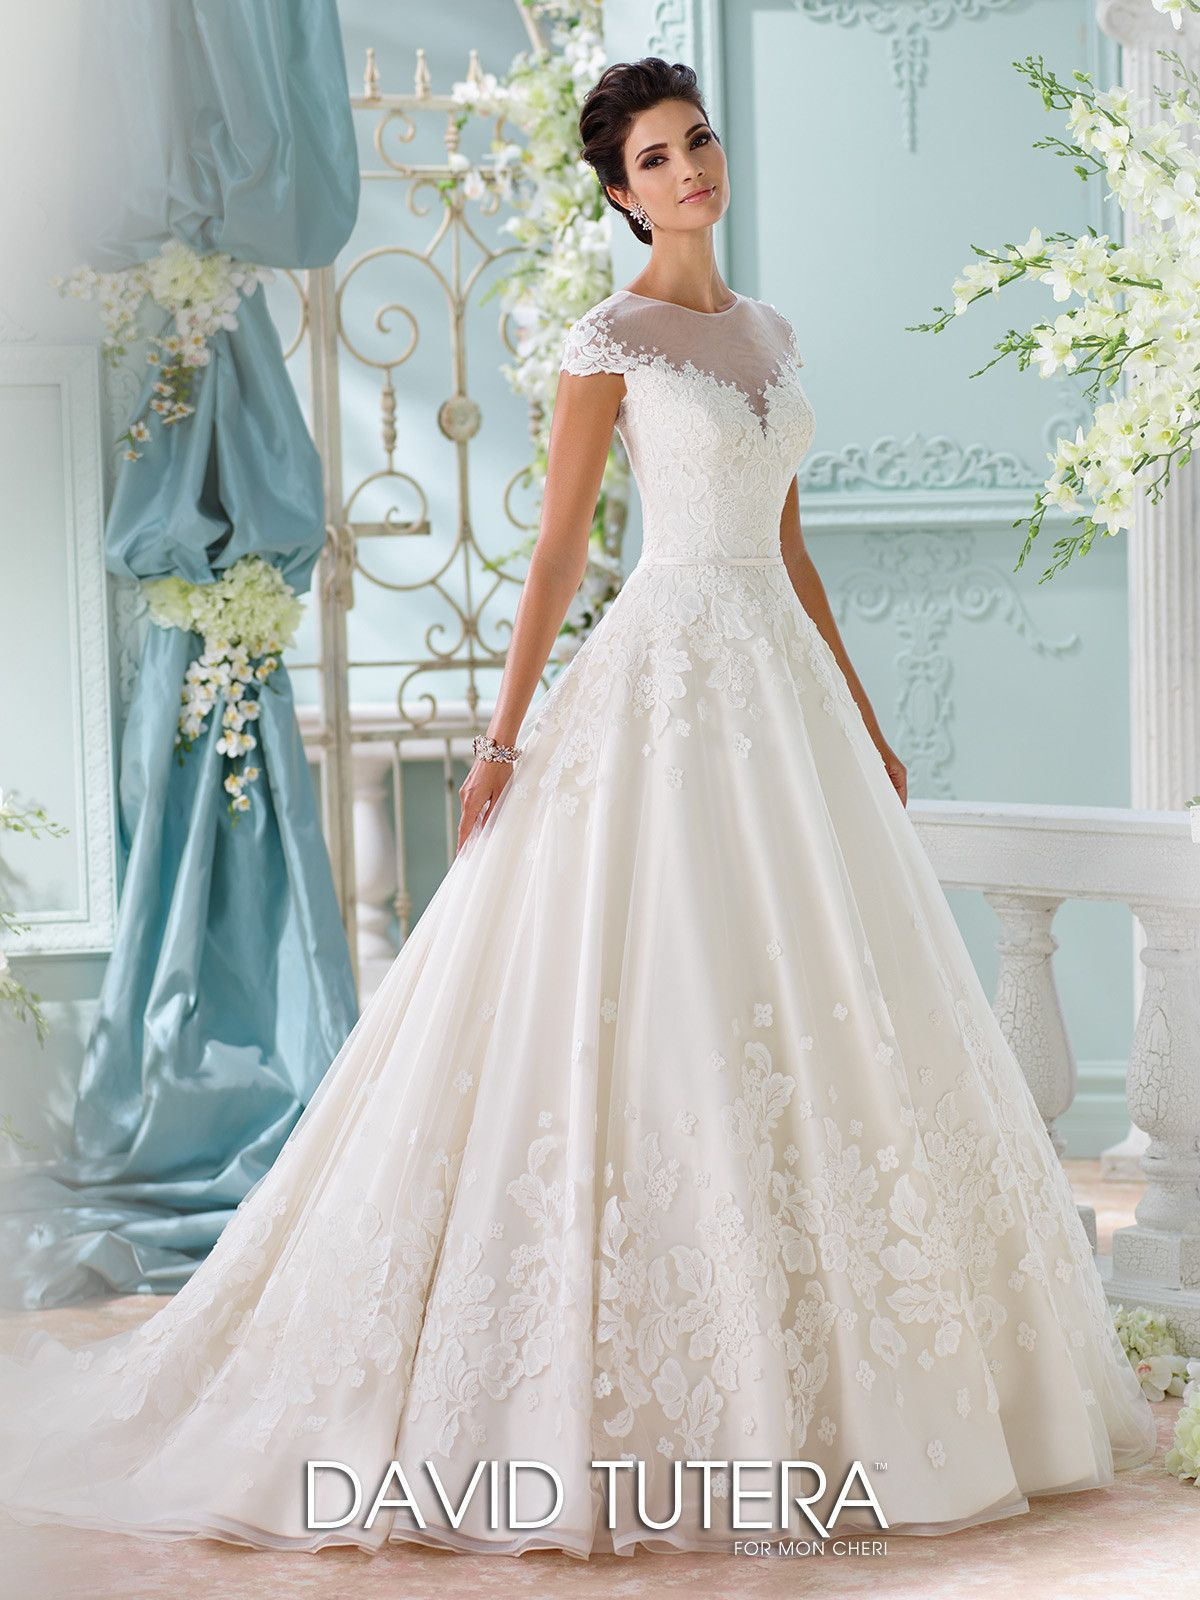 David tutera lene all dressed up bridal gown david